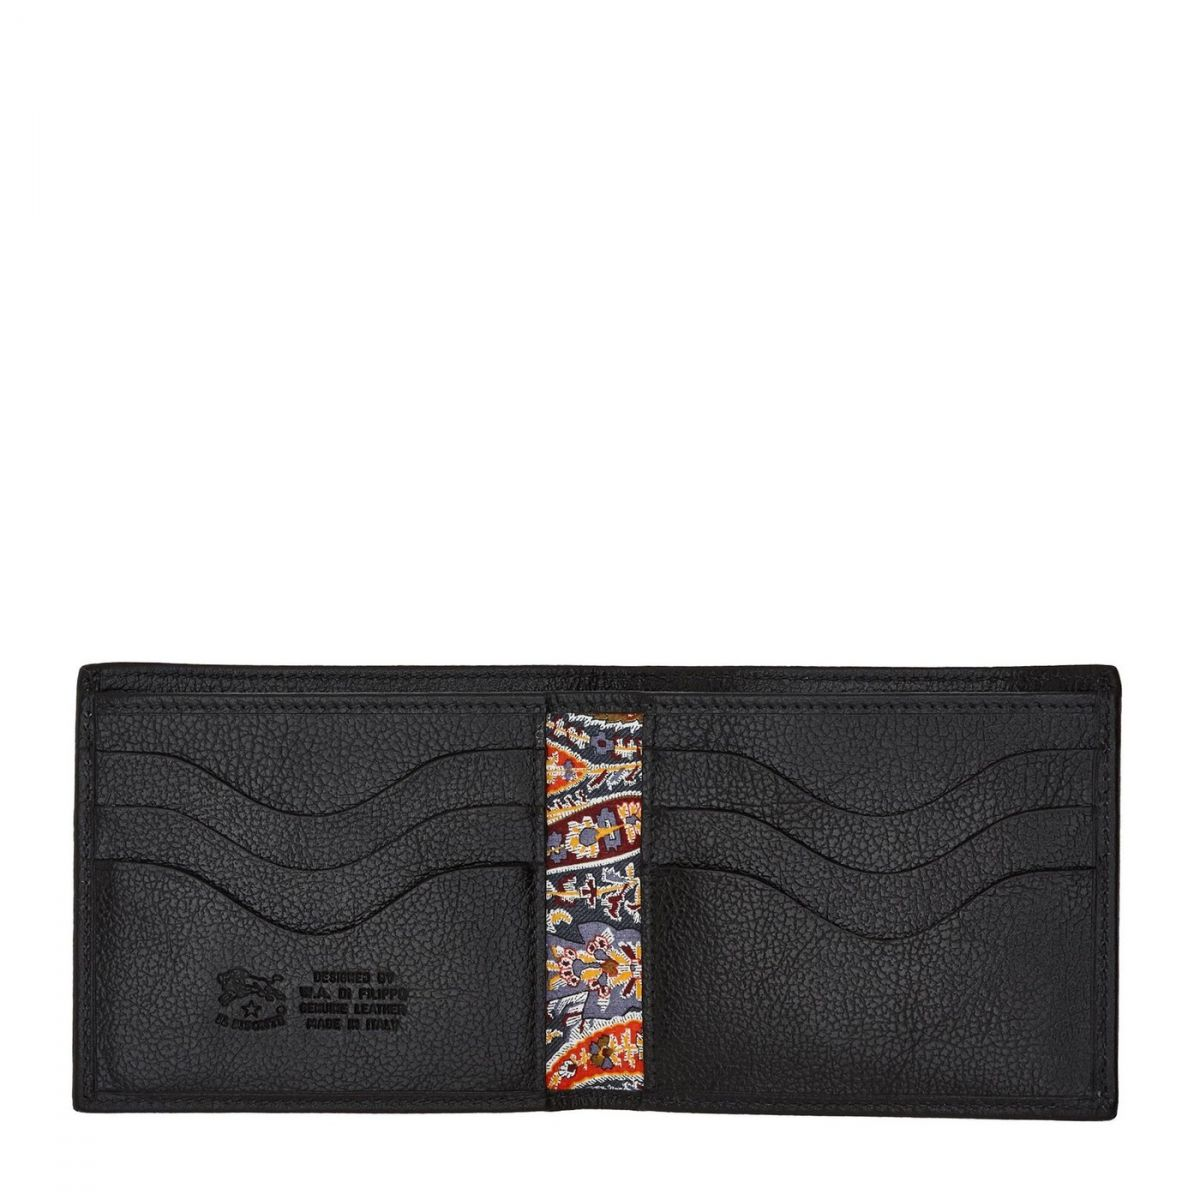 Men's Bi-Fold Wallet  in Cowhide Leather SBW005 color Black | Details